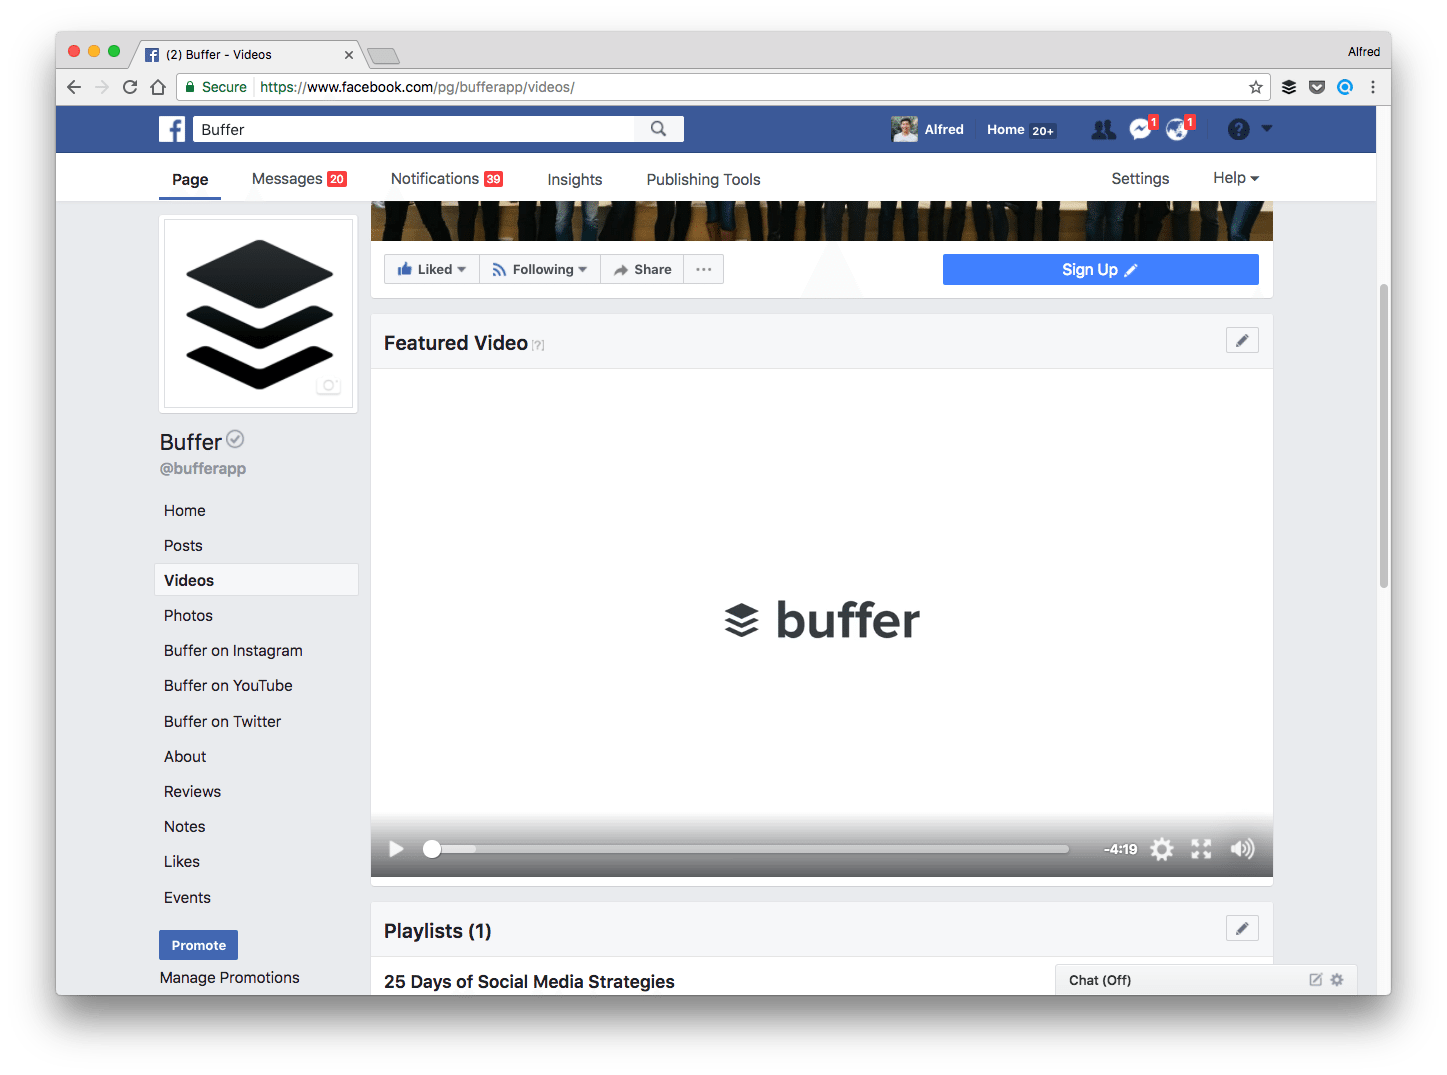 Buffer's featured video